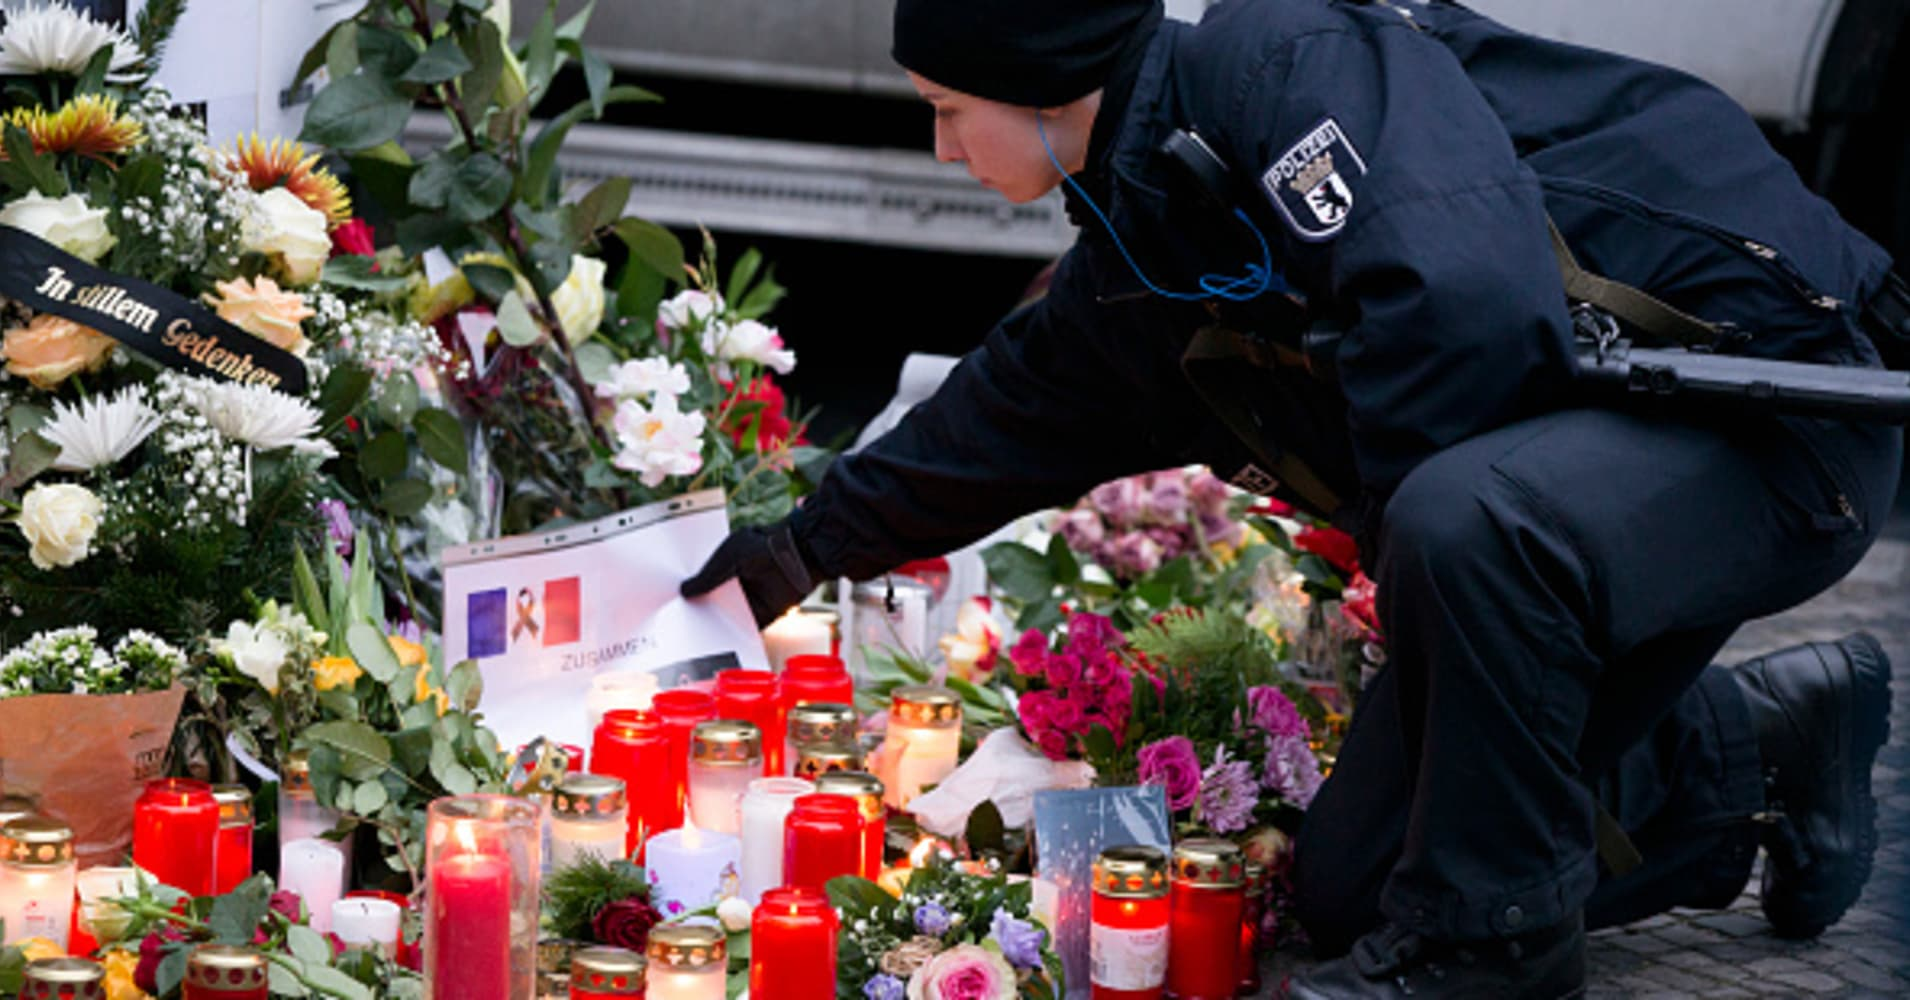 Dc5m United States Events In English Created At 2016 12 21 1657 Hoc Store Black Floral French Cuff Our Live Blog Is Tracking Reactions As Isis Claims Responsibility For The Deadly Berlin Attack Authorities Continue Manhunt Truck Driver After